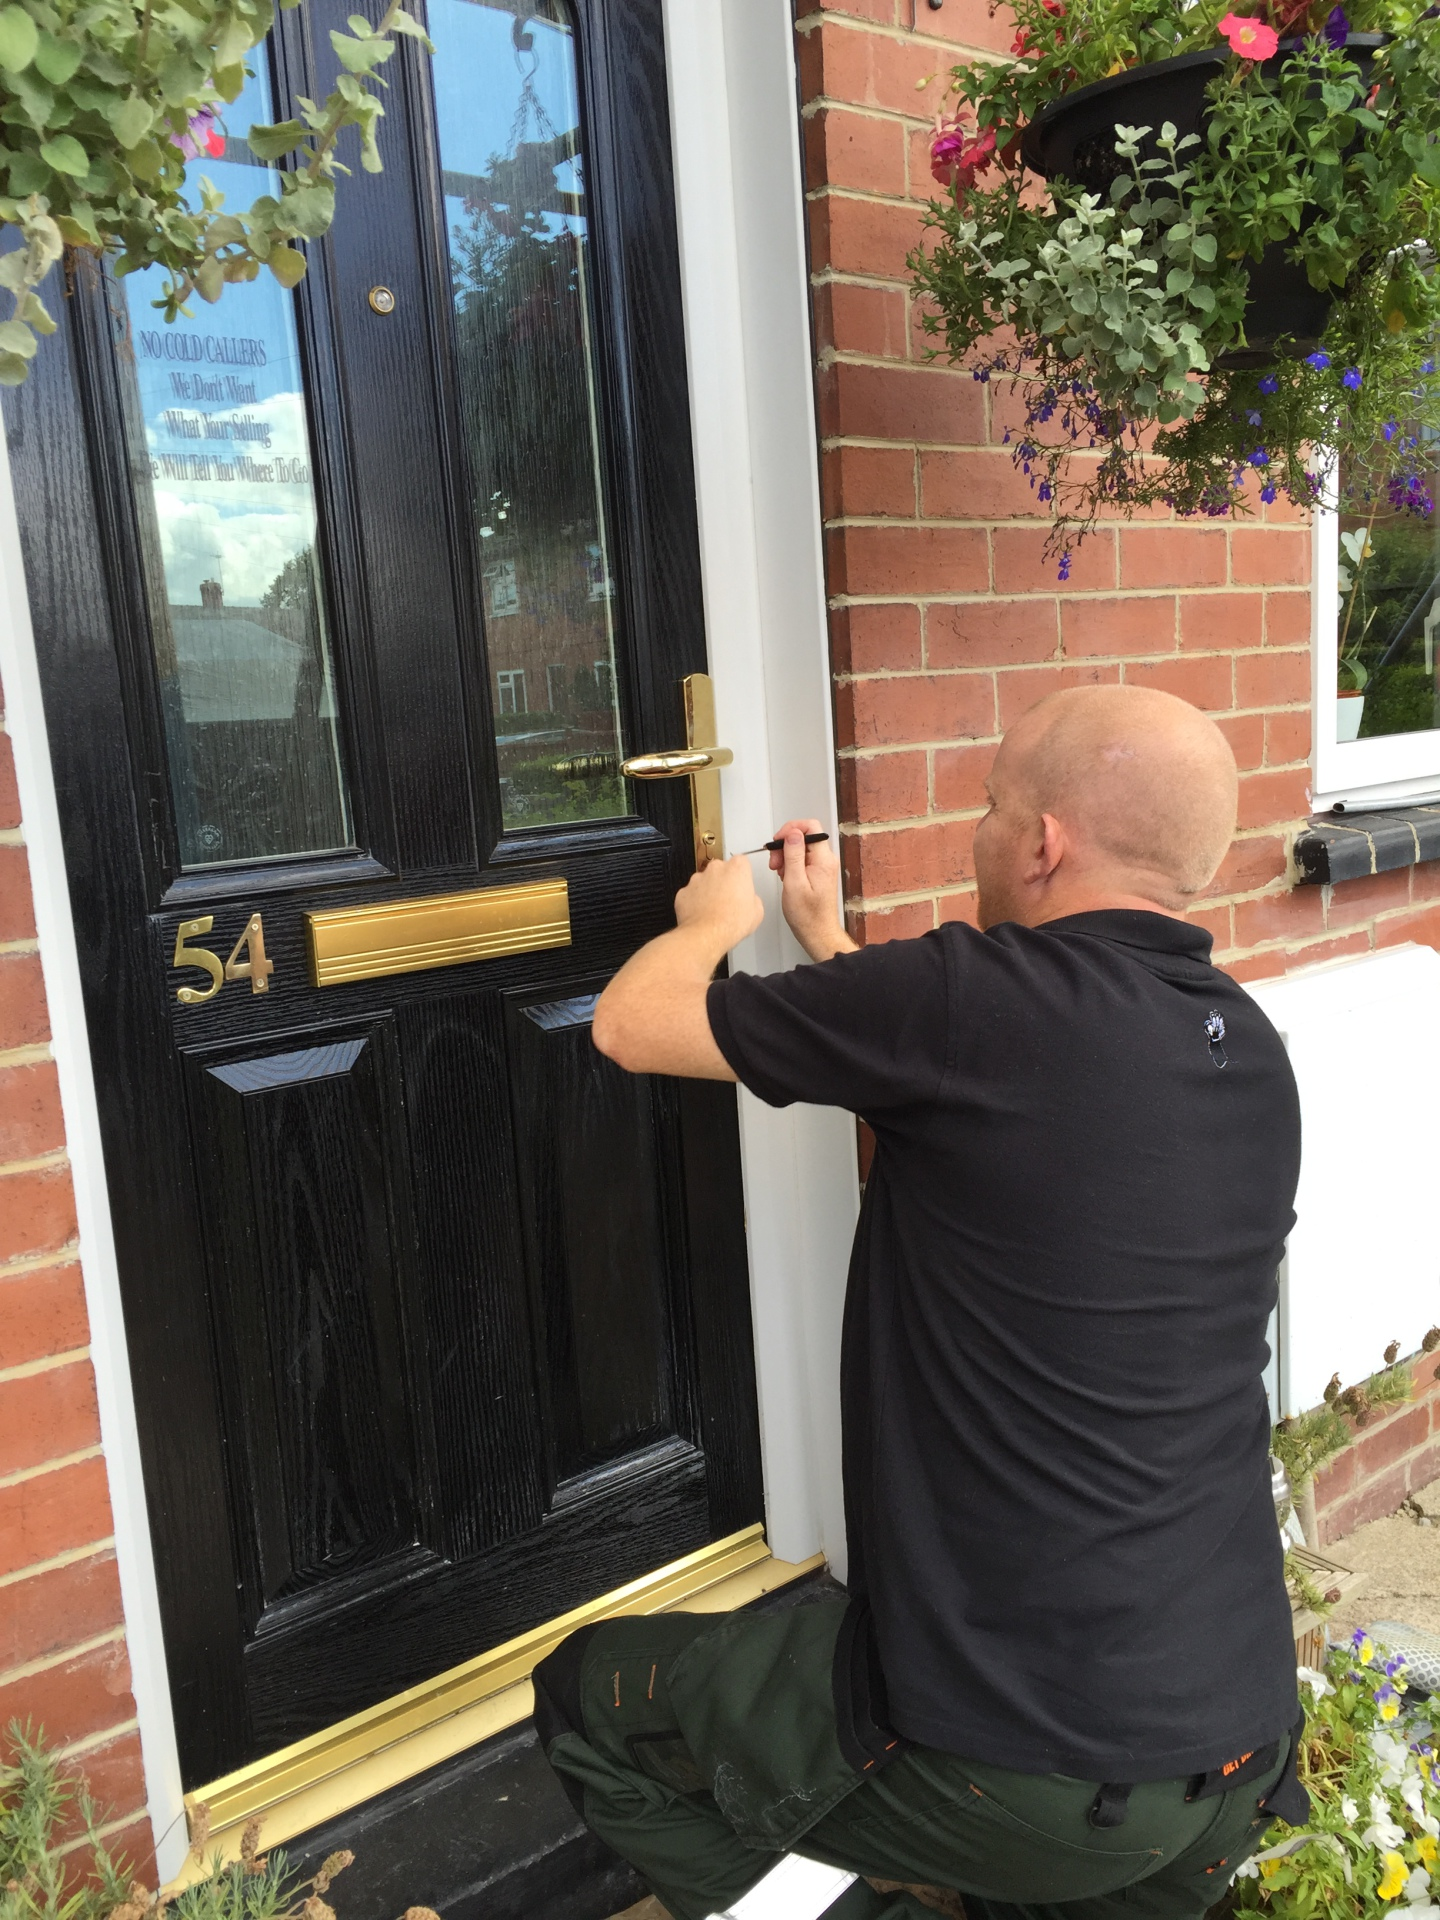 Non Destructive Gain Entry